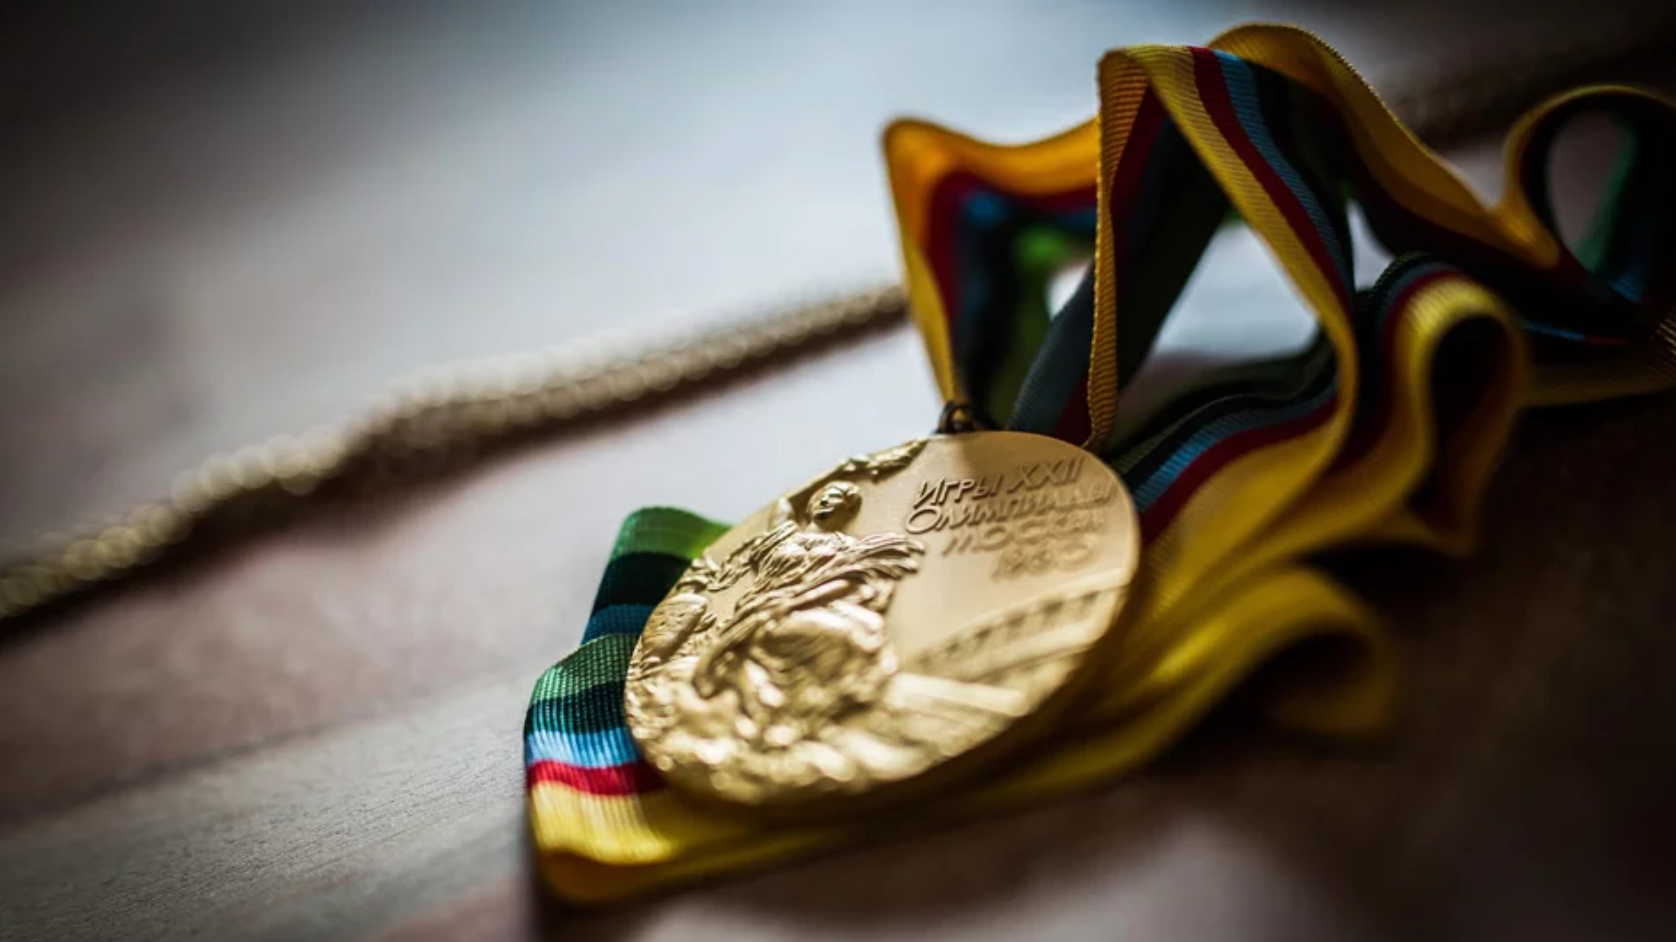 Should we give medals to rowing coaches?